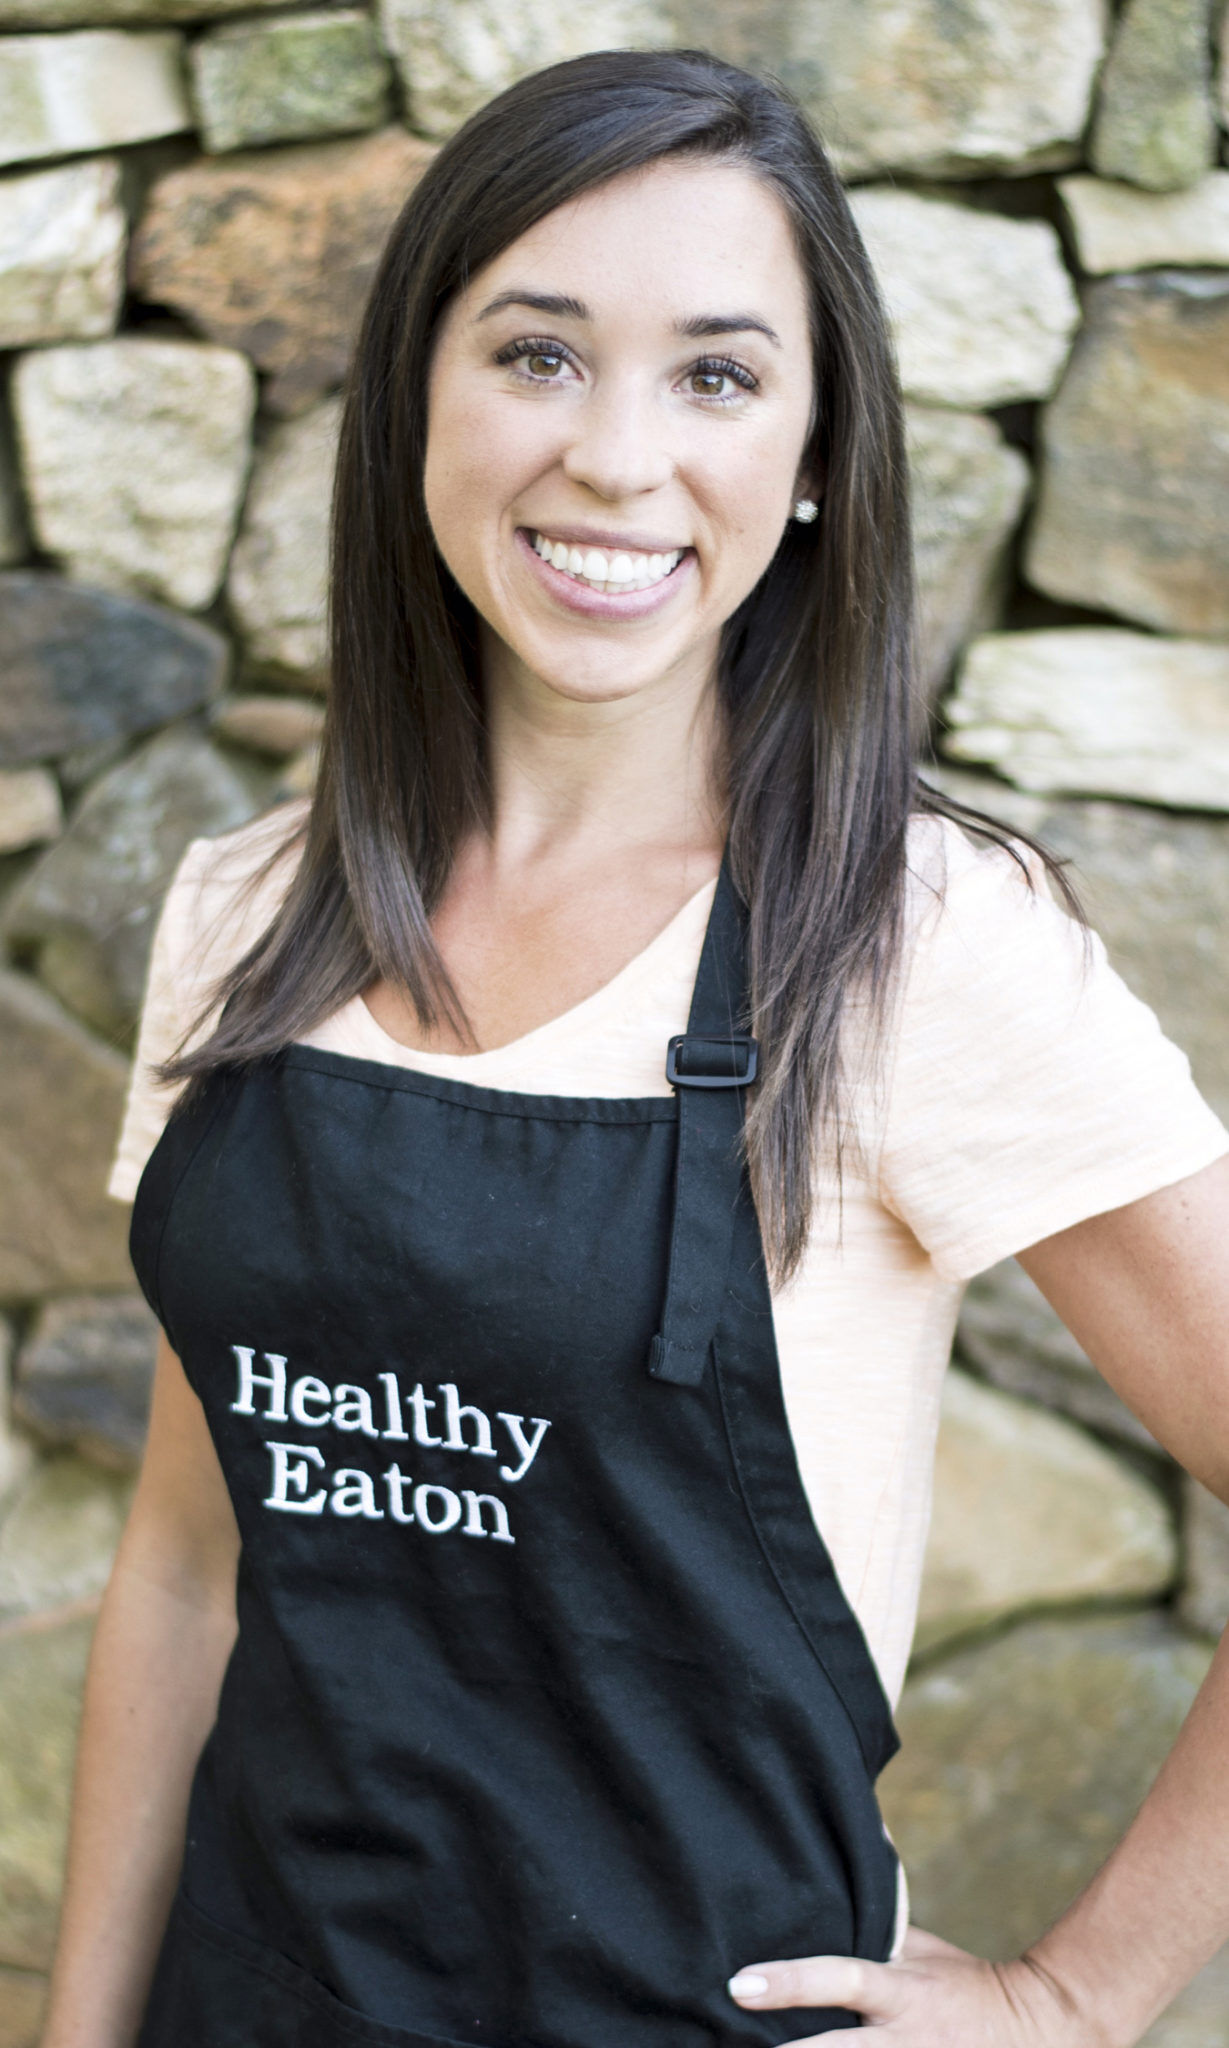 samantha eaton, healthy eaton, certified health coach, charlotte, nc, personal chef, fort mill, healthy cooking, eat clean